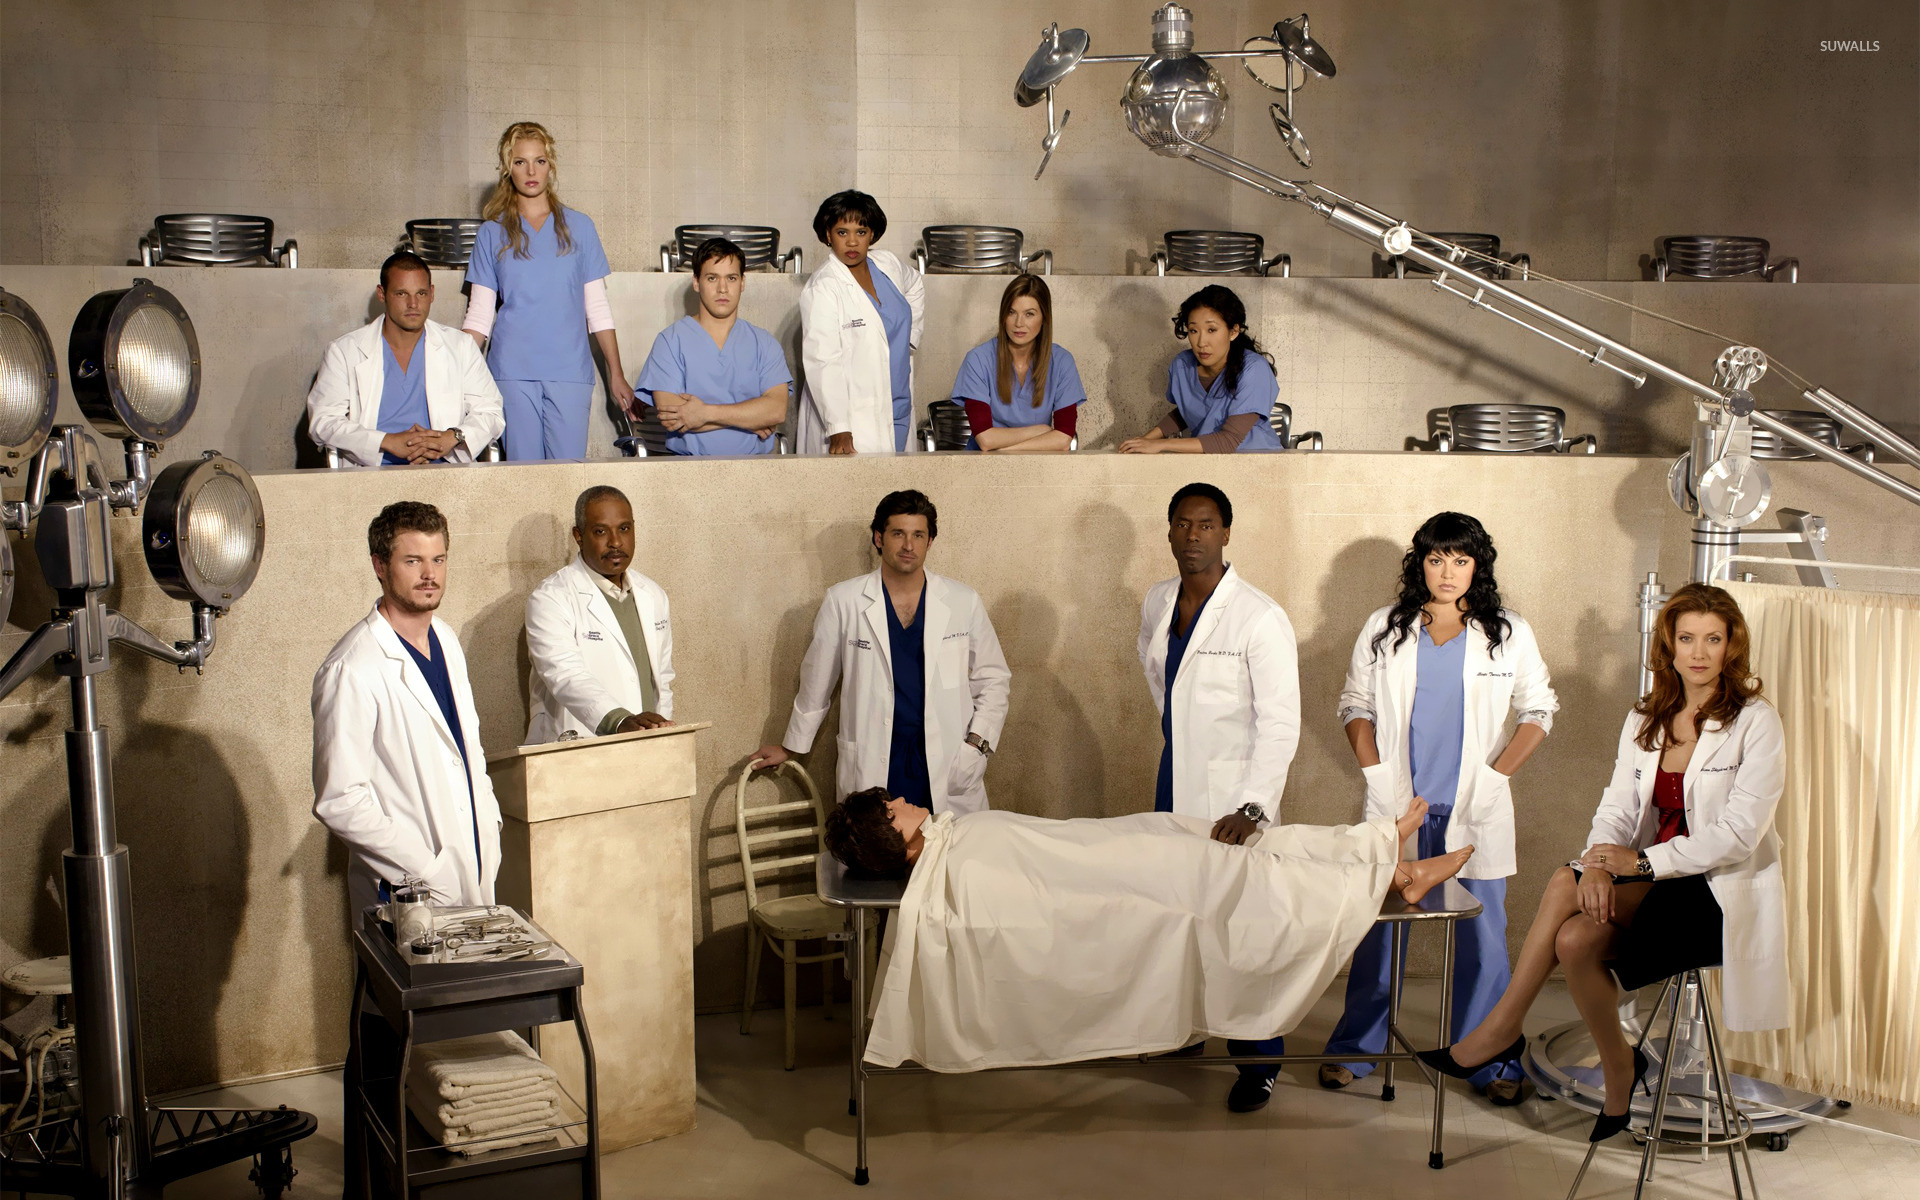 Greys Anatomy Wallpaper 12   1920 X 1200 stmednet 1920x1200